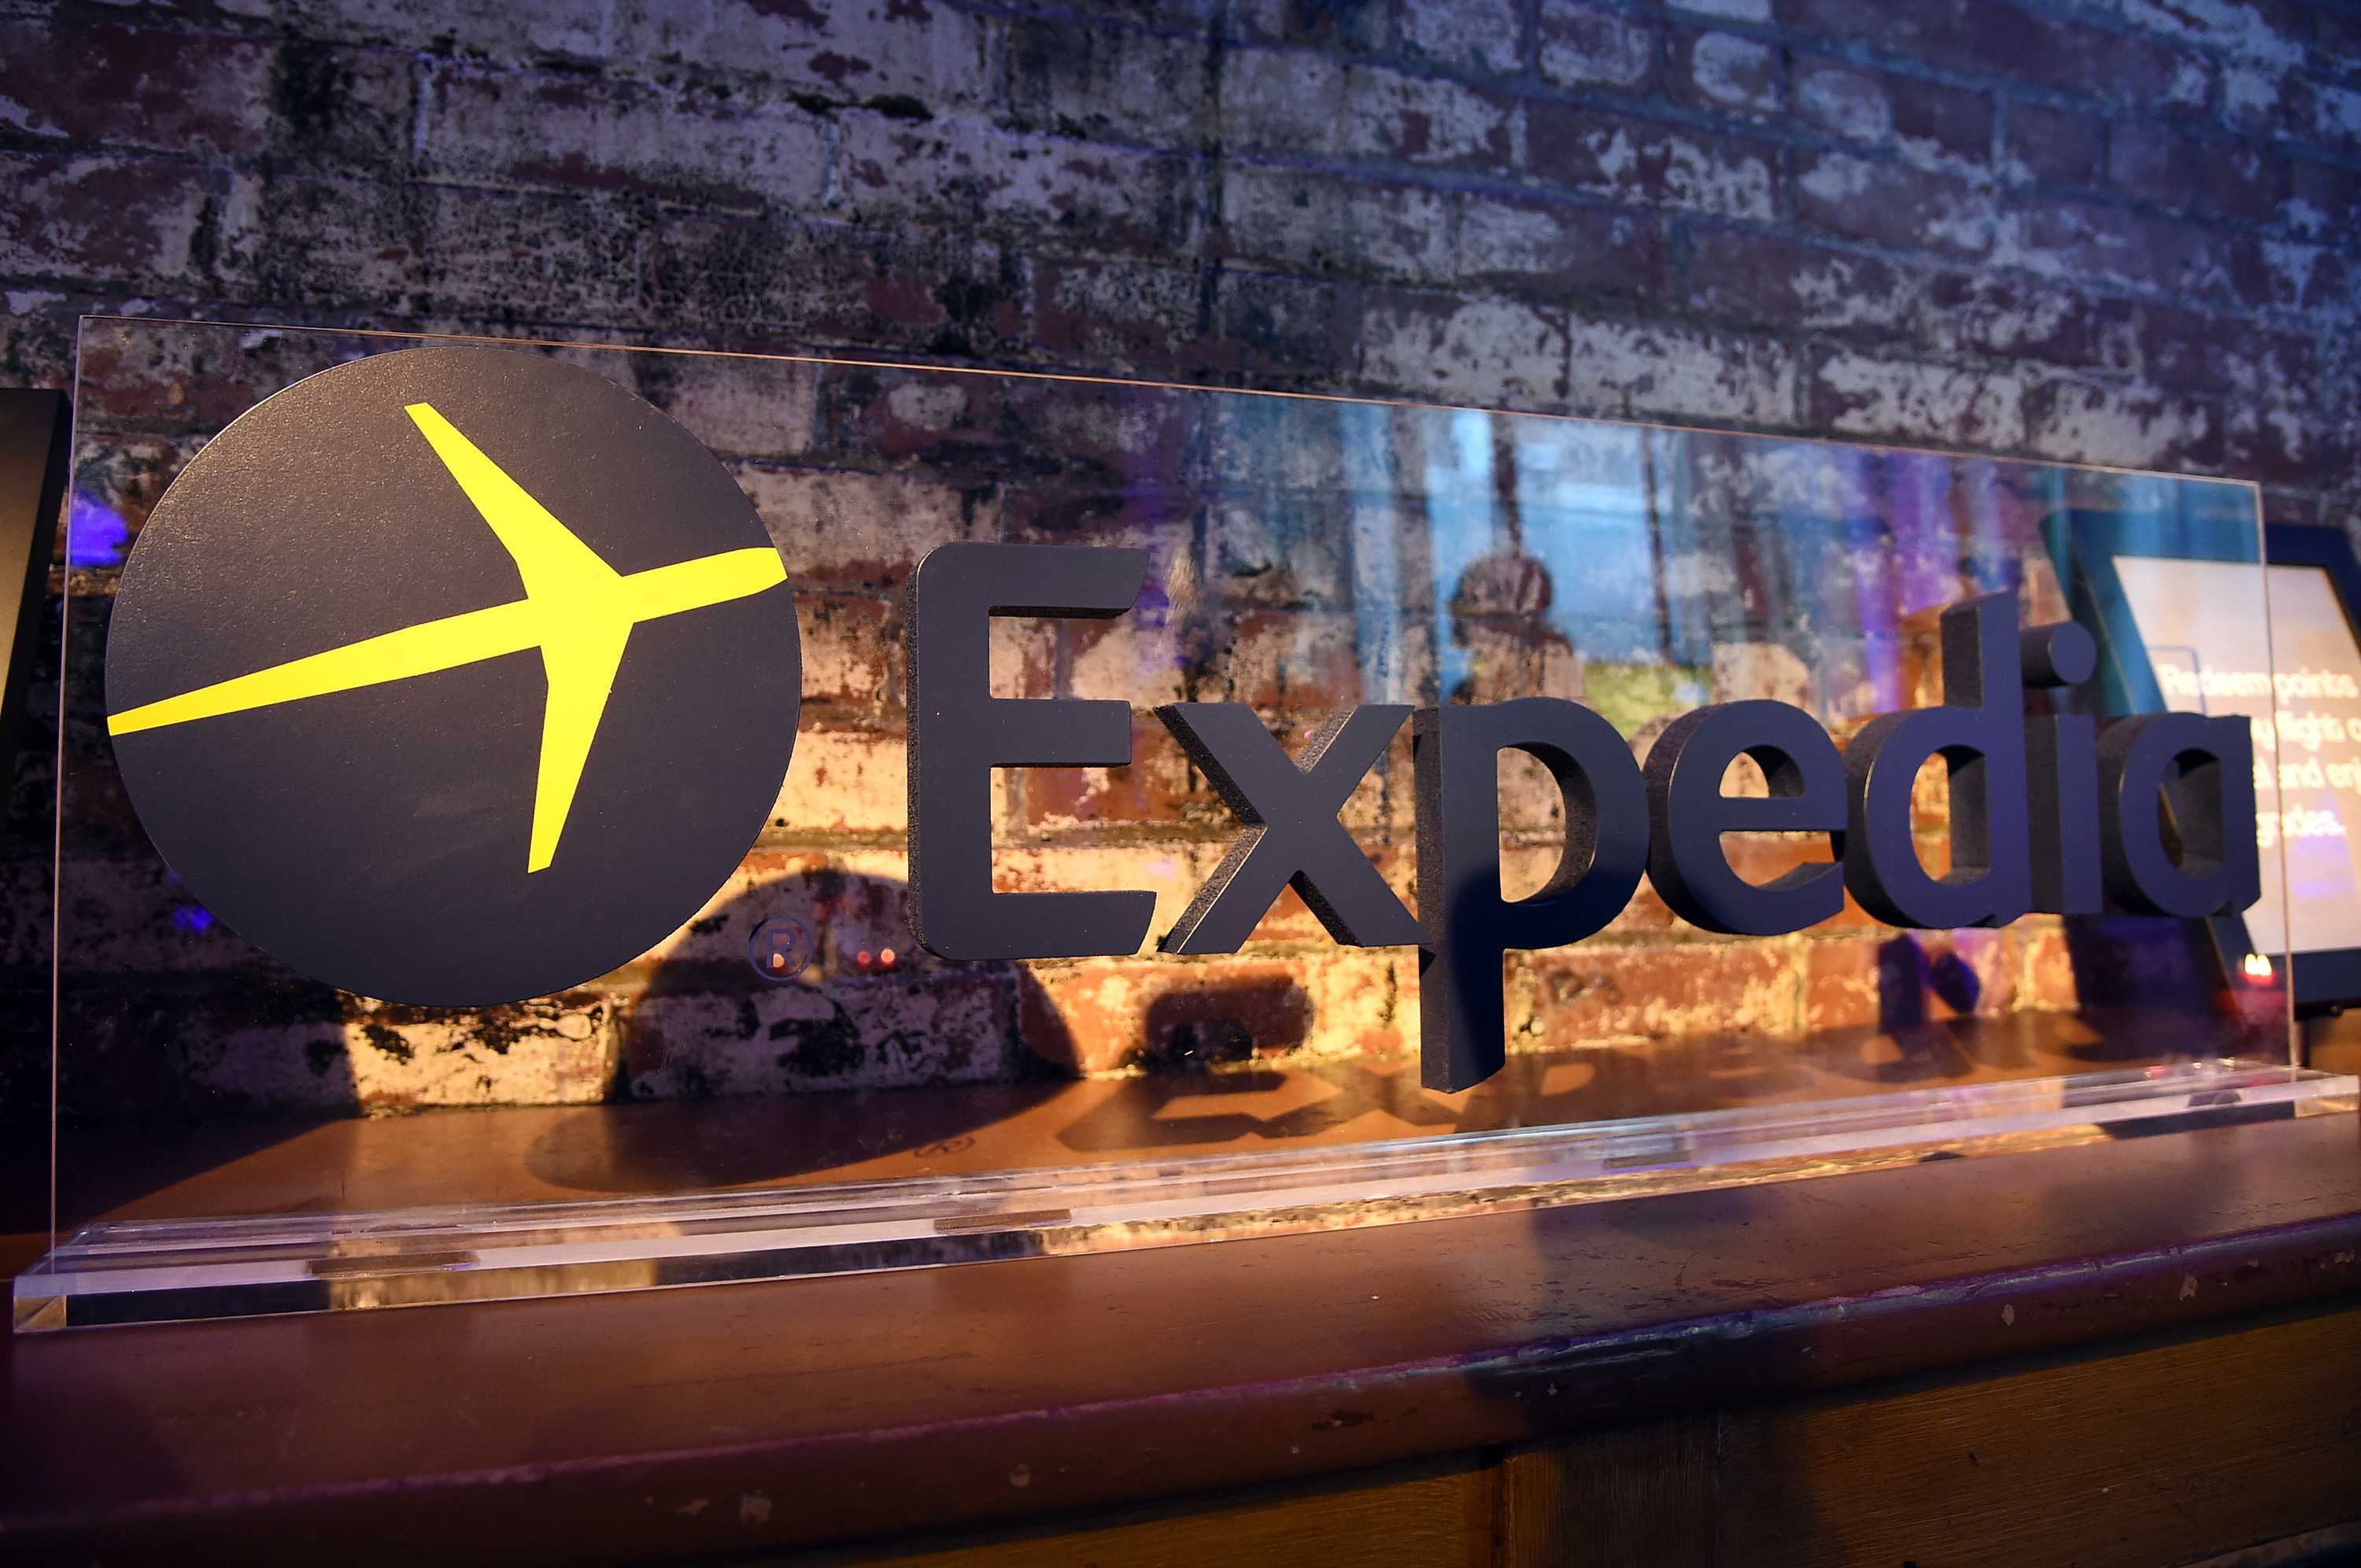 Common problems addressed by the customer care unit that answers calls to include Refund Issue, Complaint, Technical and Service Support, Cancel or Change Booking, Disputes and other customer service issues. The Expedia call center that you call into has employees from Phoenix, India and is open 24 hours, 7 days according to customers.